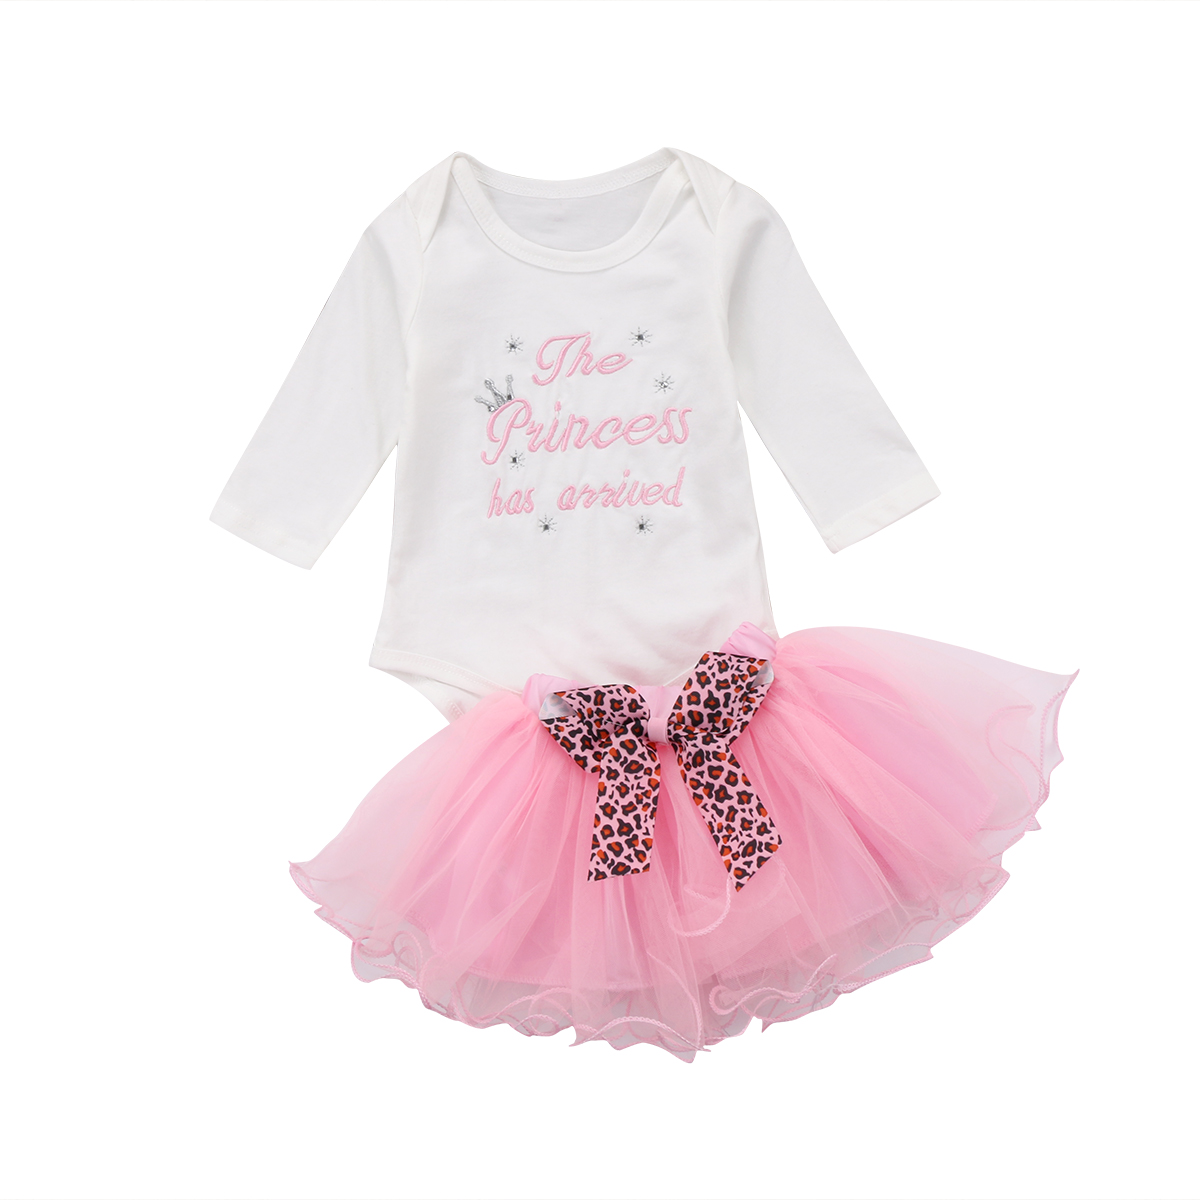 Pudcoco Newborn Princess Baby Girl clothes set Romper Bodysuit Junpsuit+Tulle Skirt dress first birthday clothes for baby girl